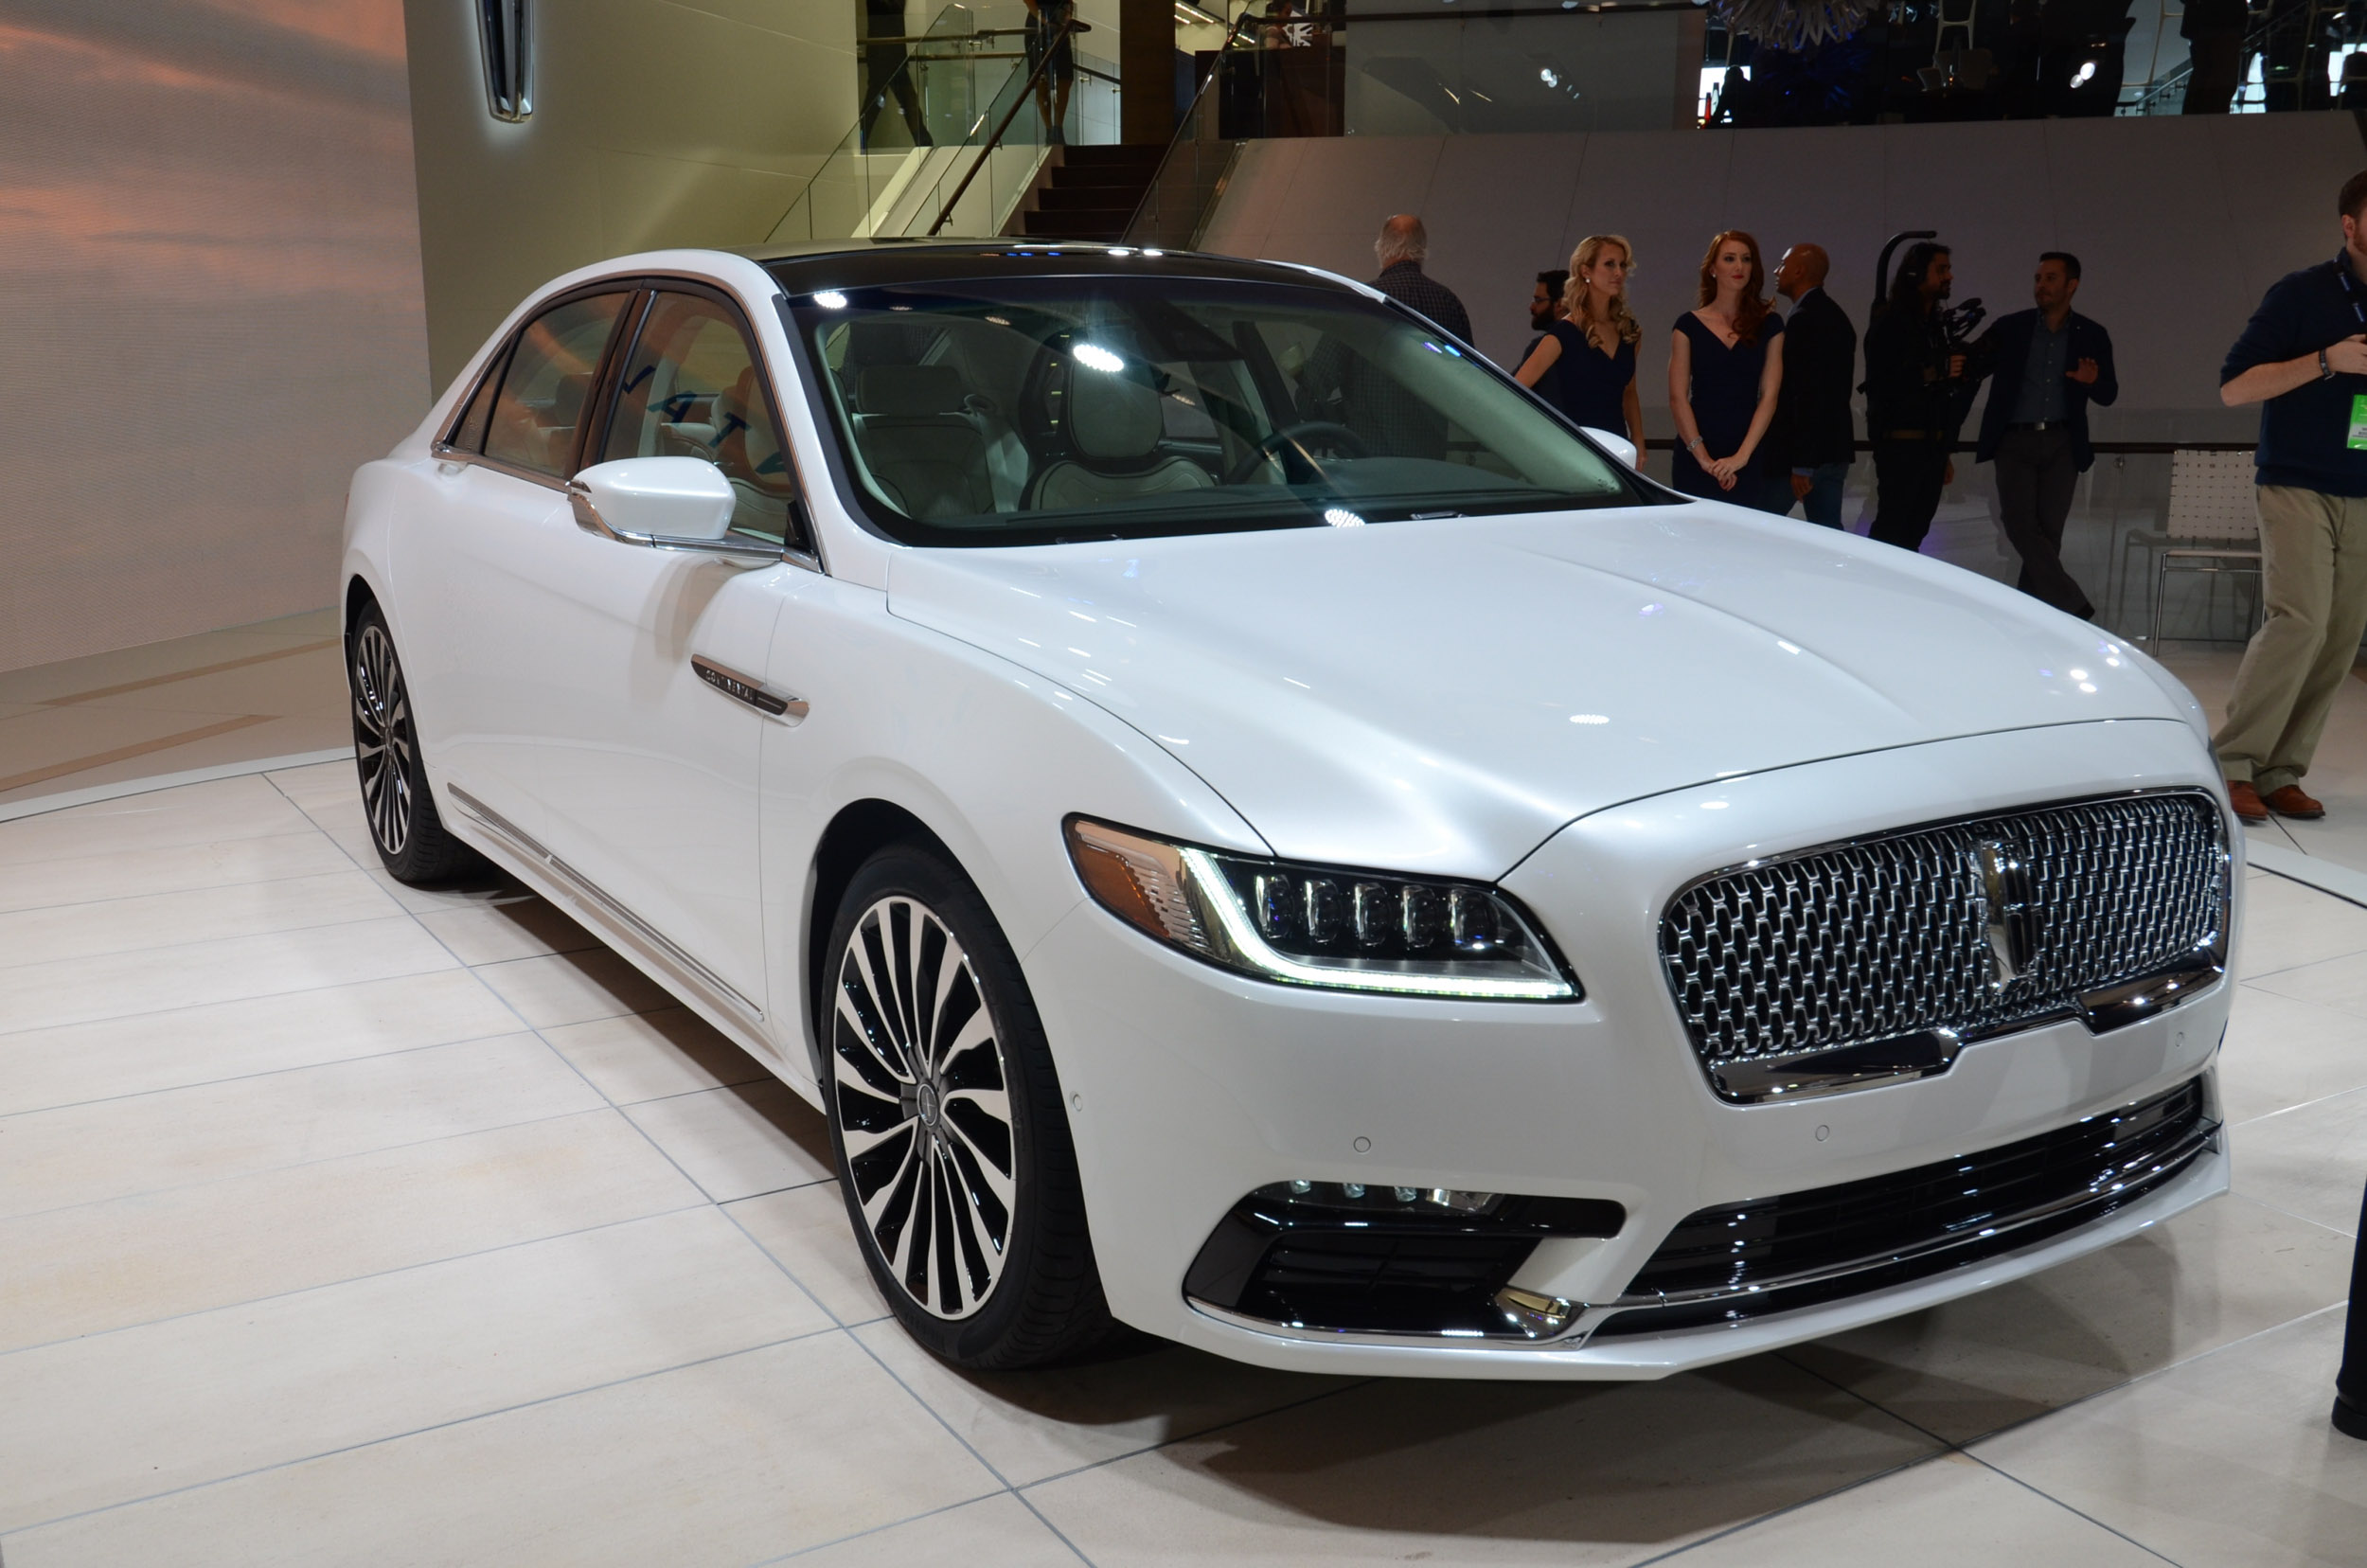 LincolnContinent10-2 Outstanding Lincoln Continental New York Auto Show Cars Trend